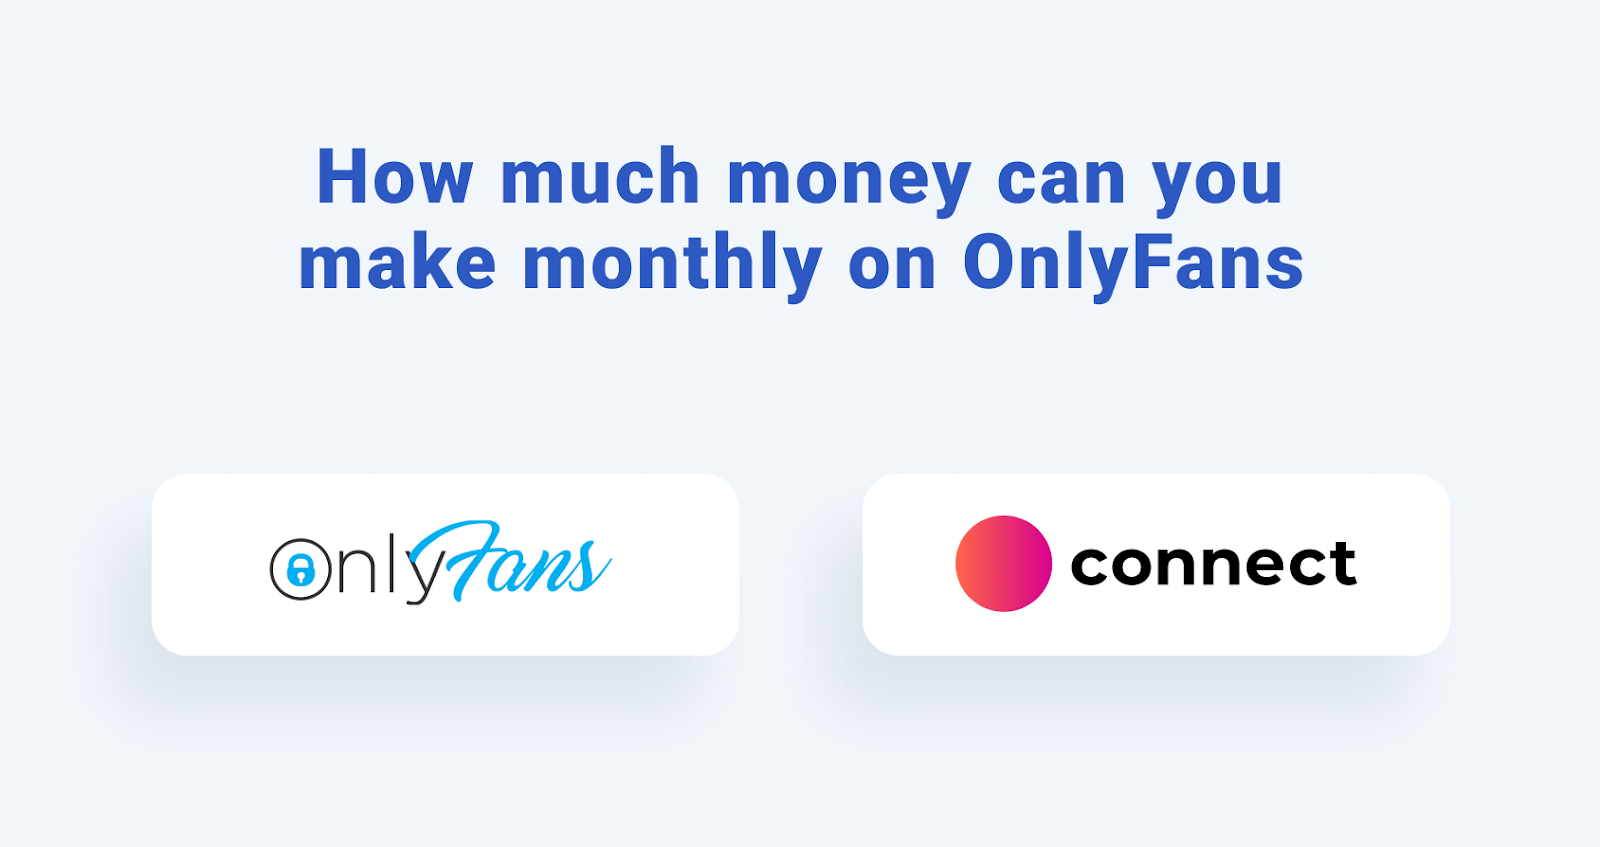 How much money can you make monthly on OnlyFans